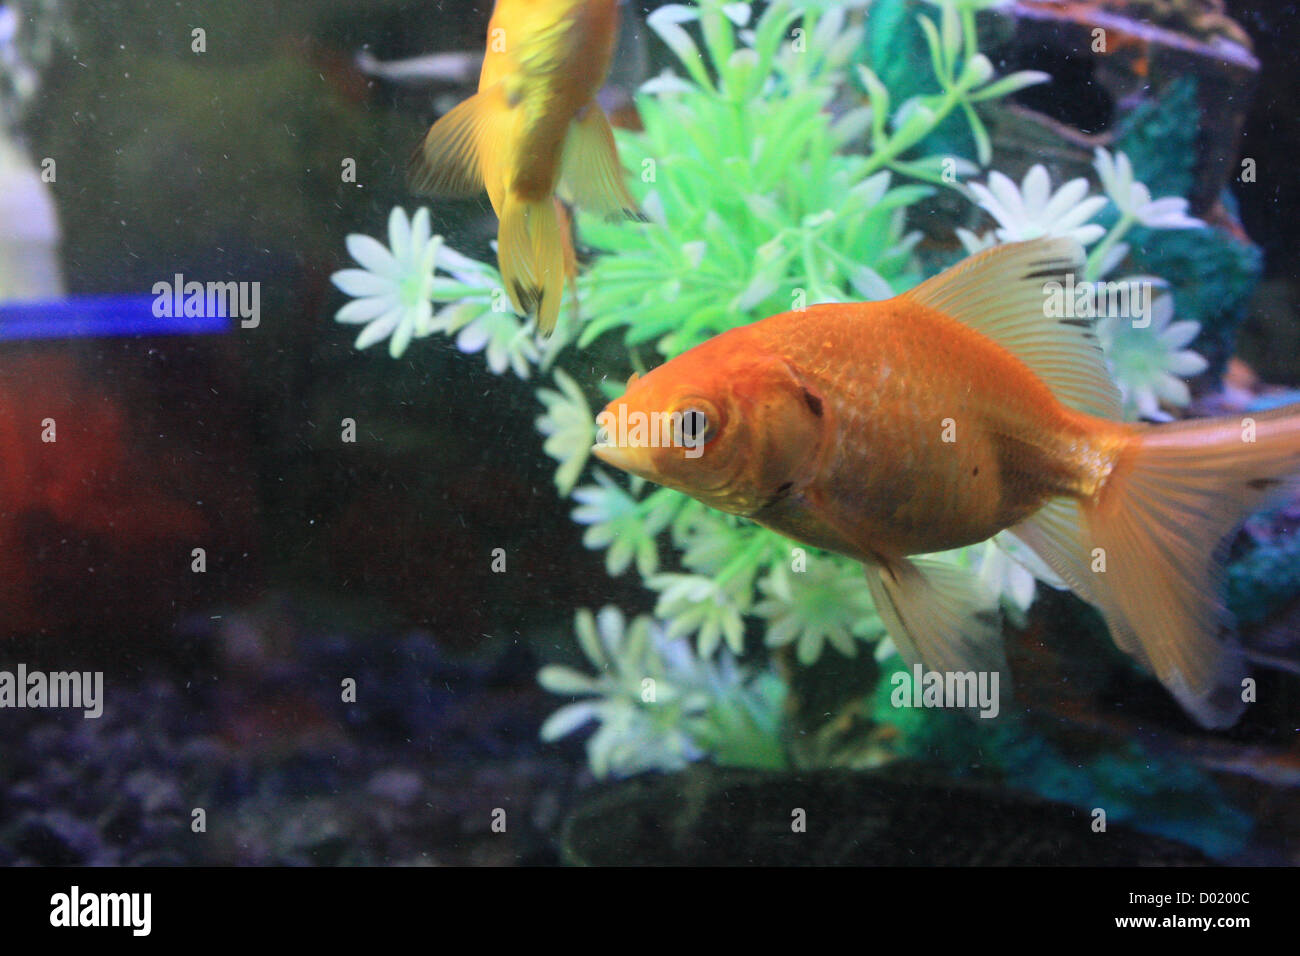 Freshwater aquarium fish buy - Freshwater Fish Aquarium Fish Tropical Fish Pictures Of Fish Fish Tanks Fish For Sale All About Fish Salt Water Fish Che